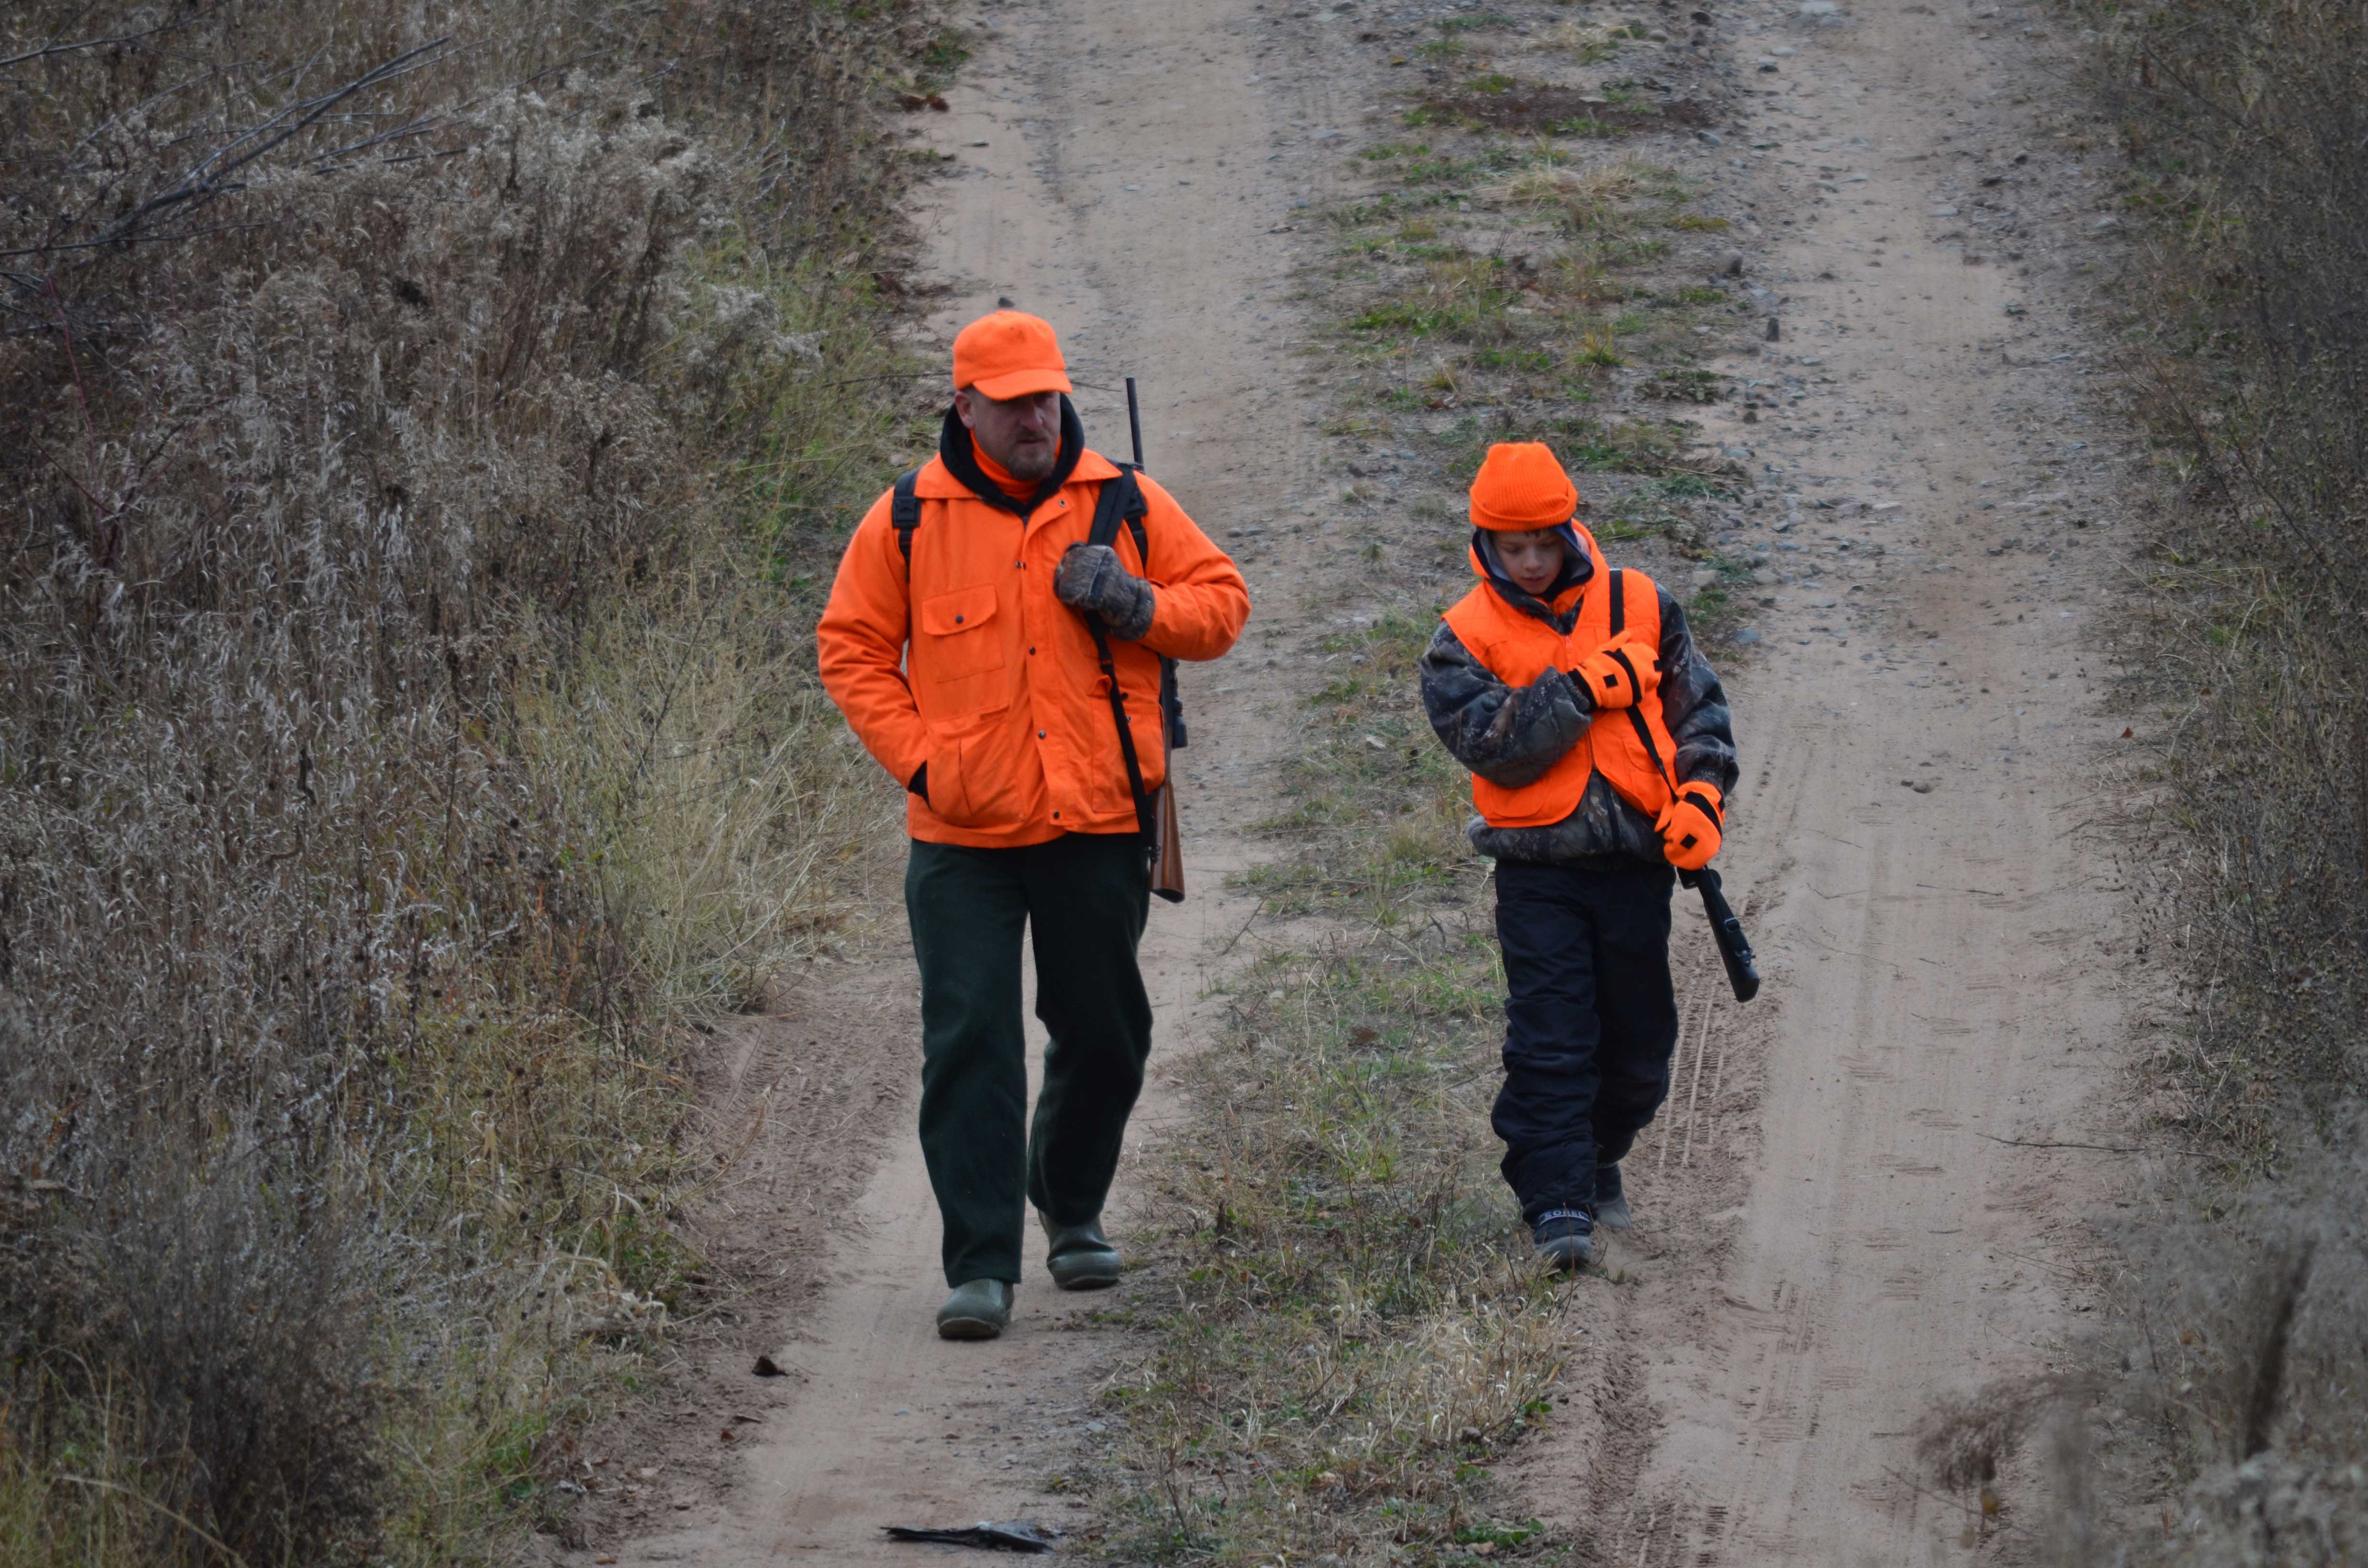 An adult and youth in blaze orange walk next to each other on a hunt.